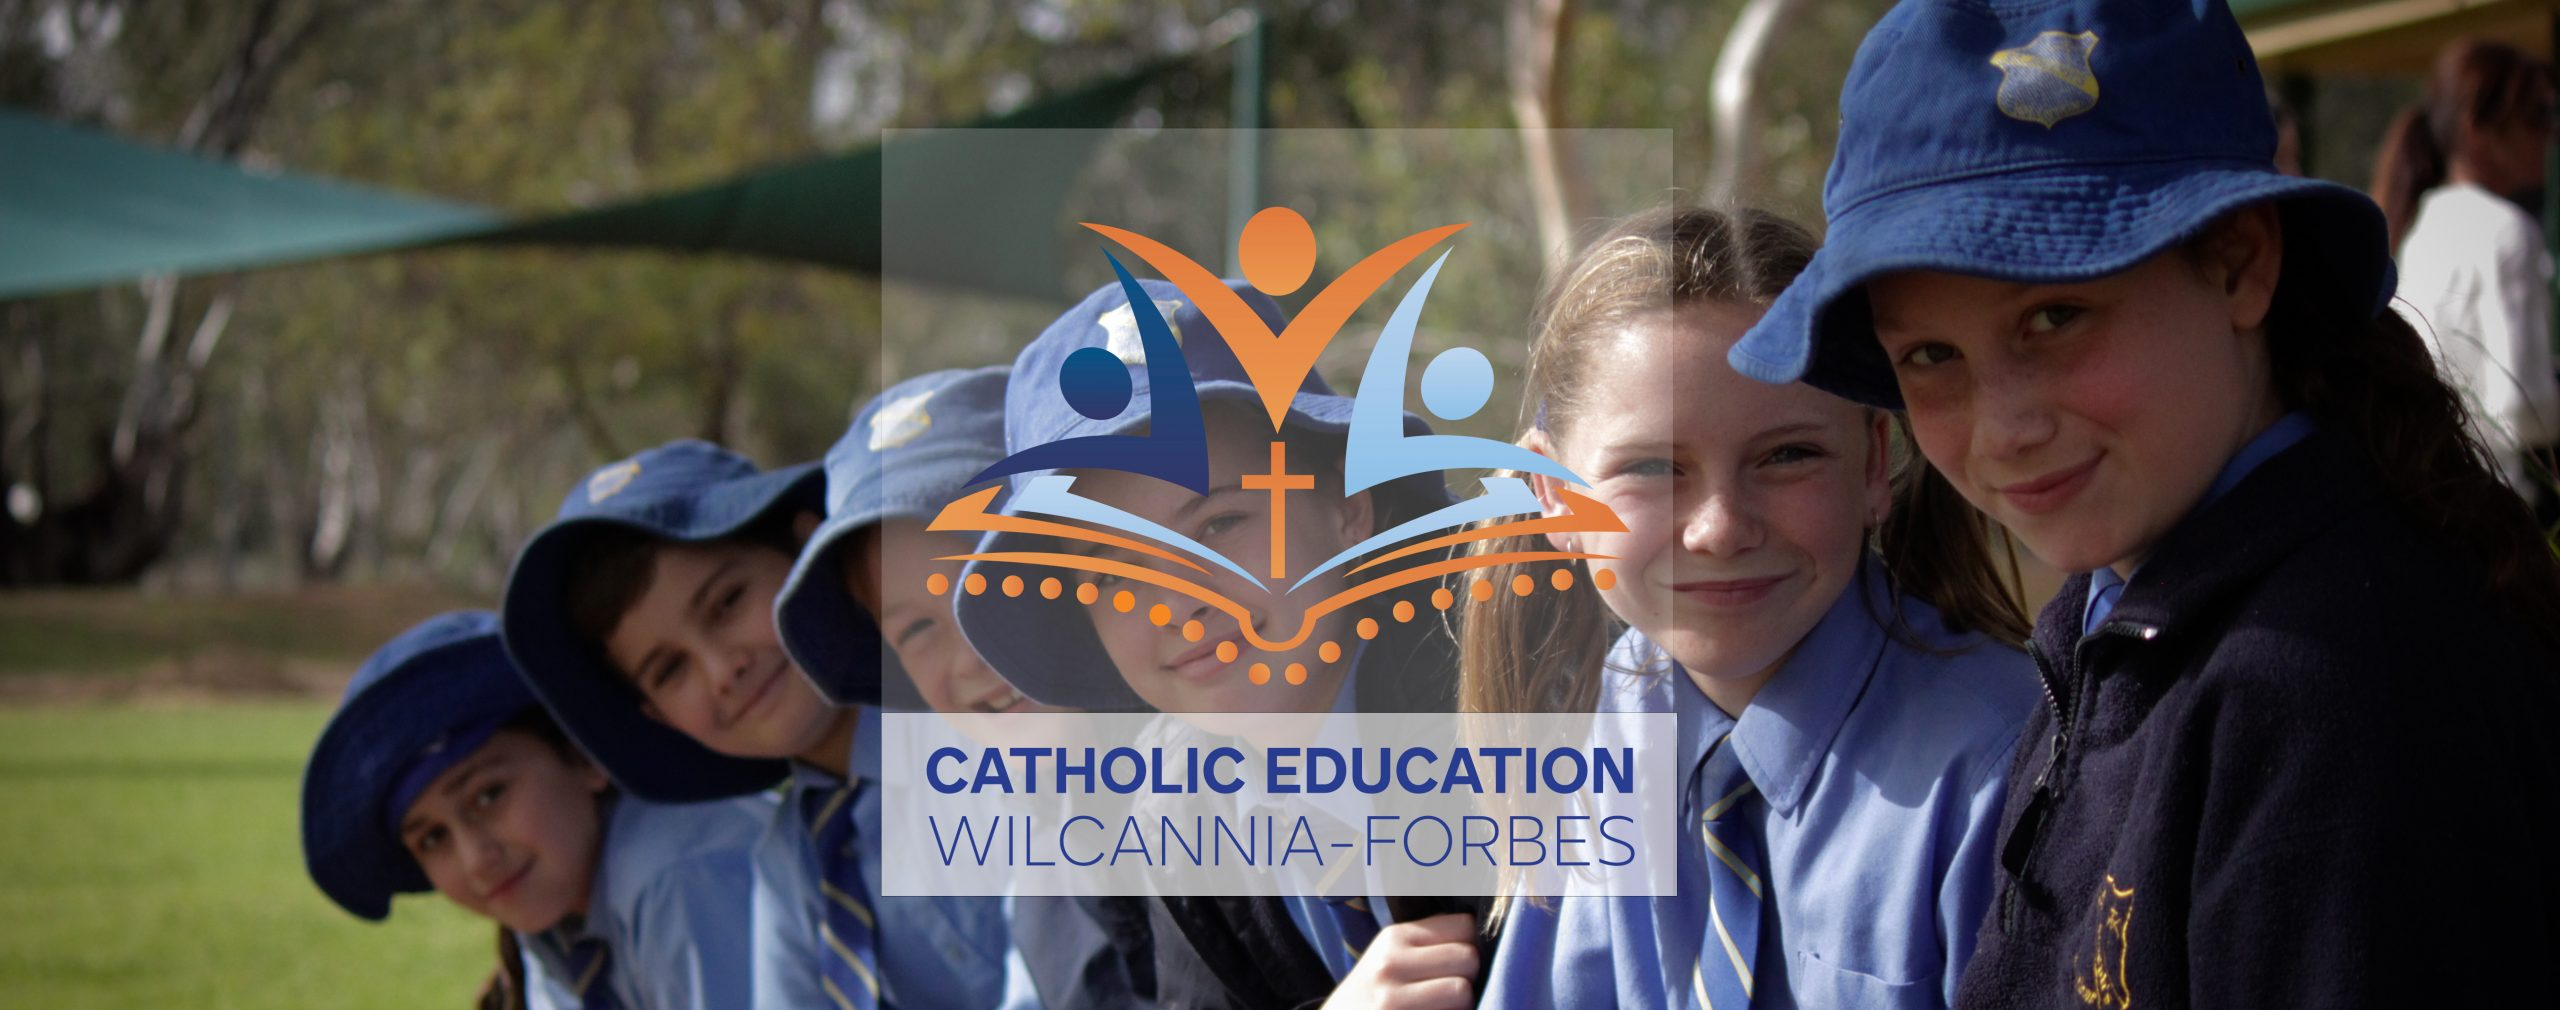 Welcome to Catholic Education Wilcannia-Forbes